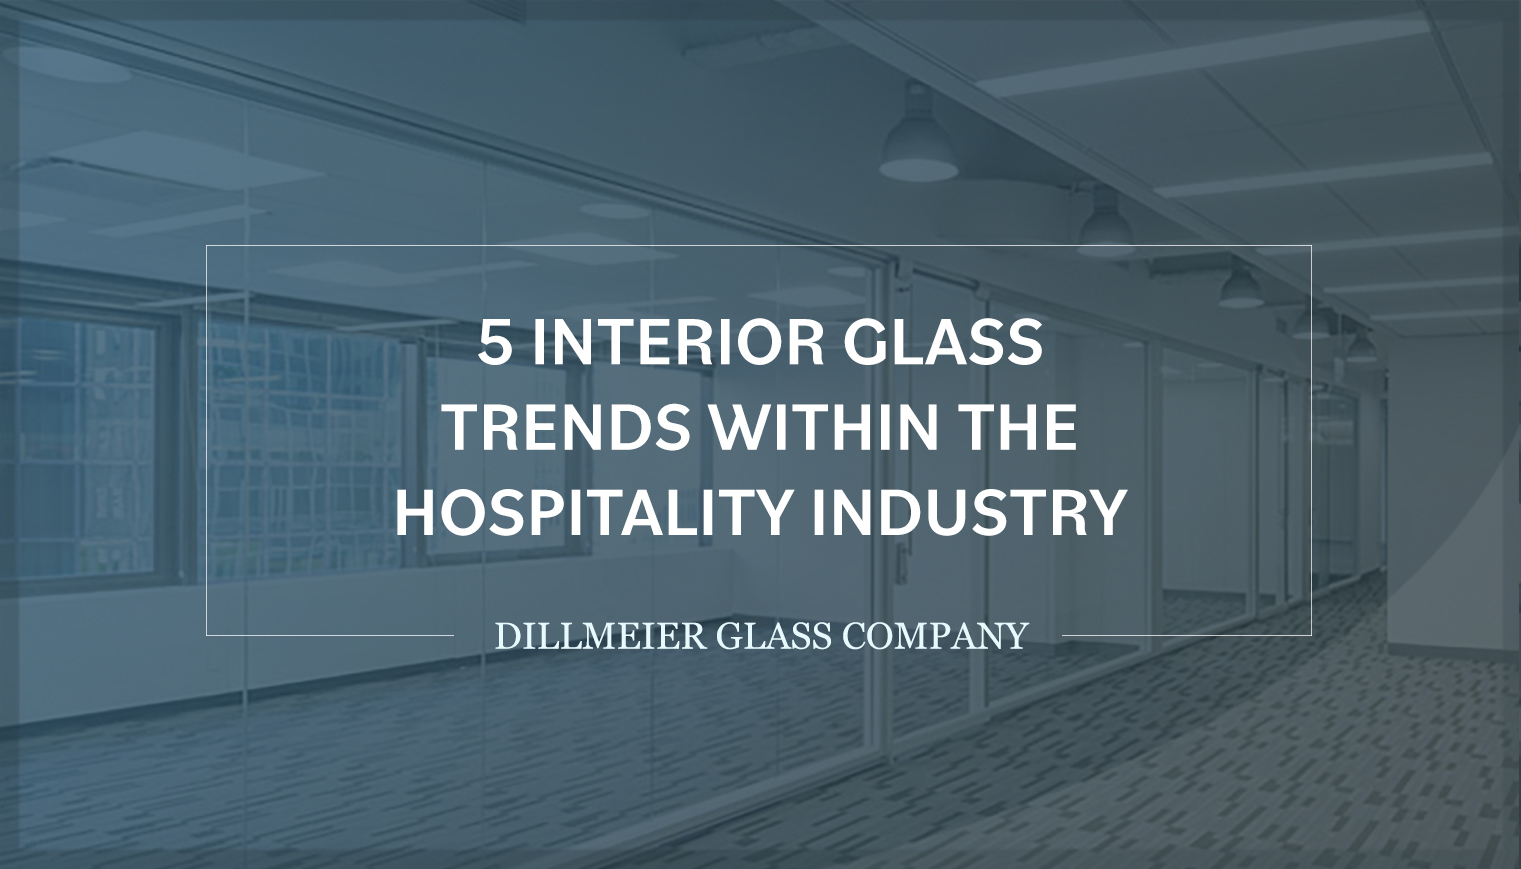 5 Interior Glass Trends Within the Hospitality Industry